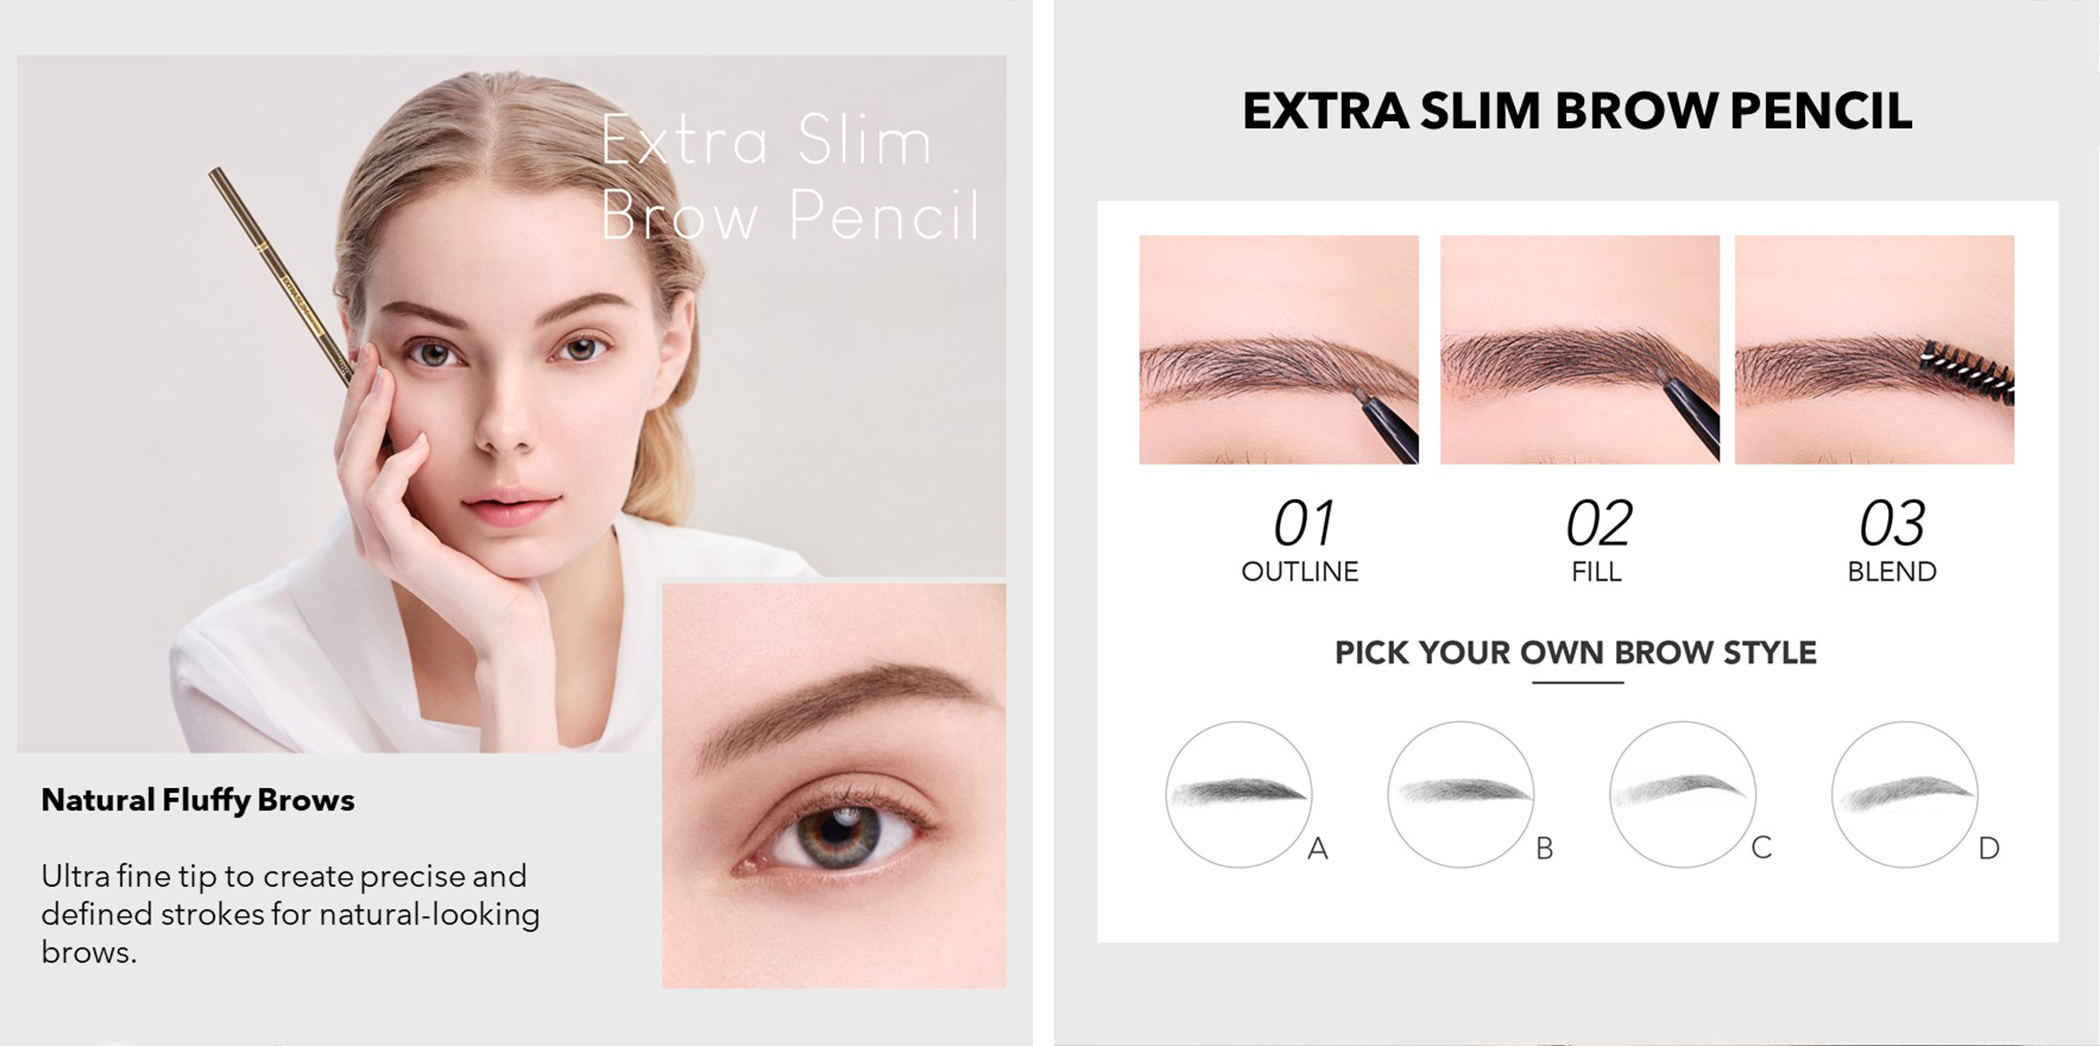 Y.O.U Beauty Just Launched One Of The Longest Lasting Eyeliner That Will Amaze You!